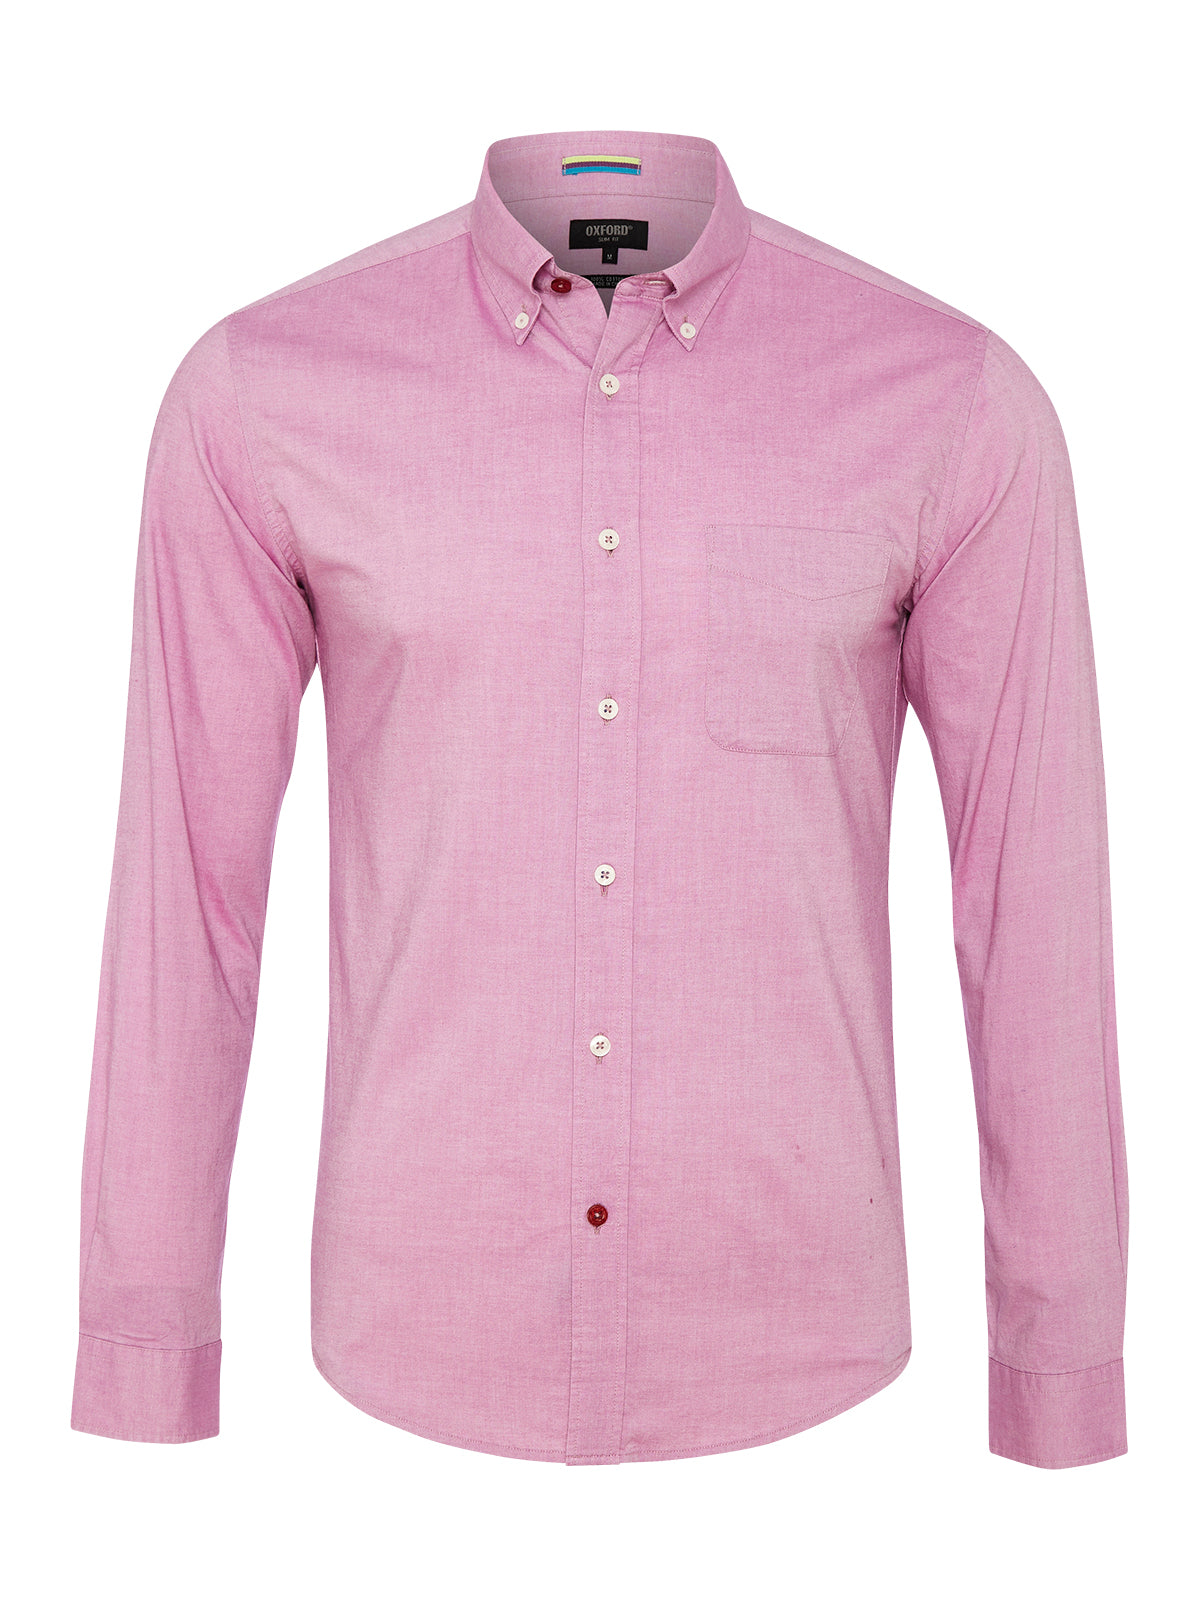 UXBRIDGE SLIM FIT SHIRT BERRY